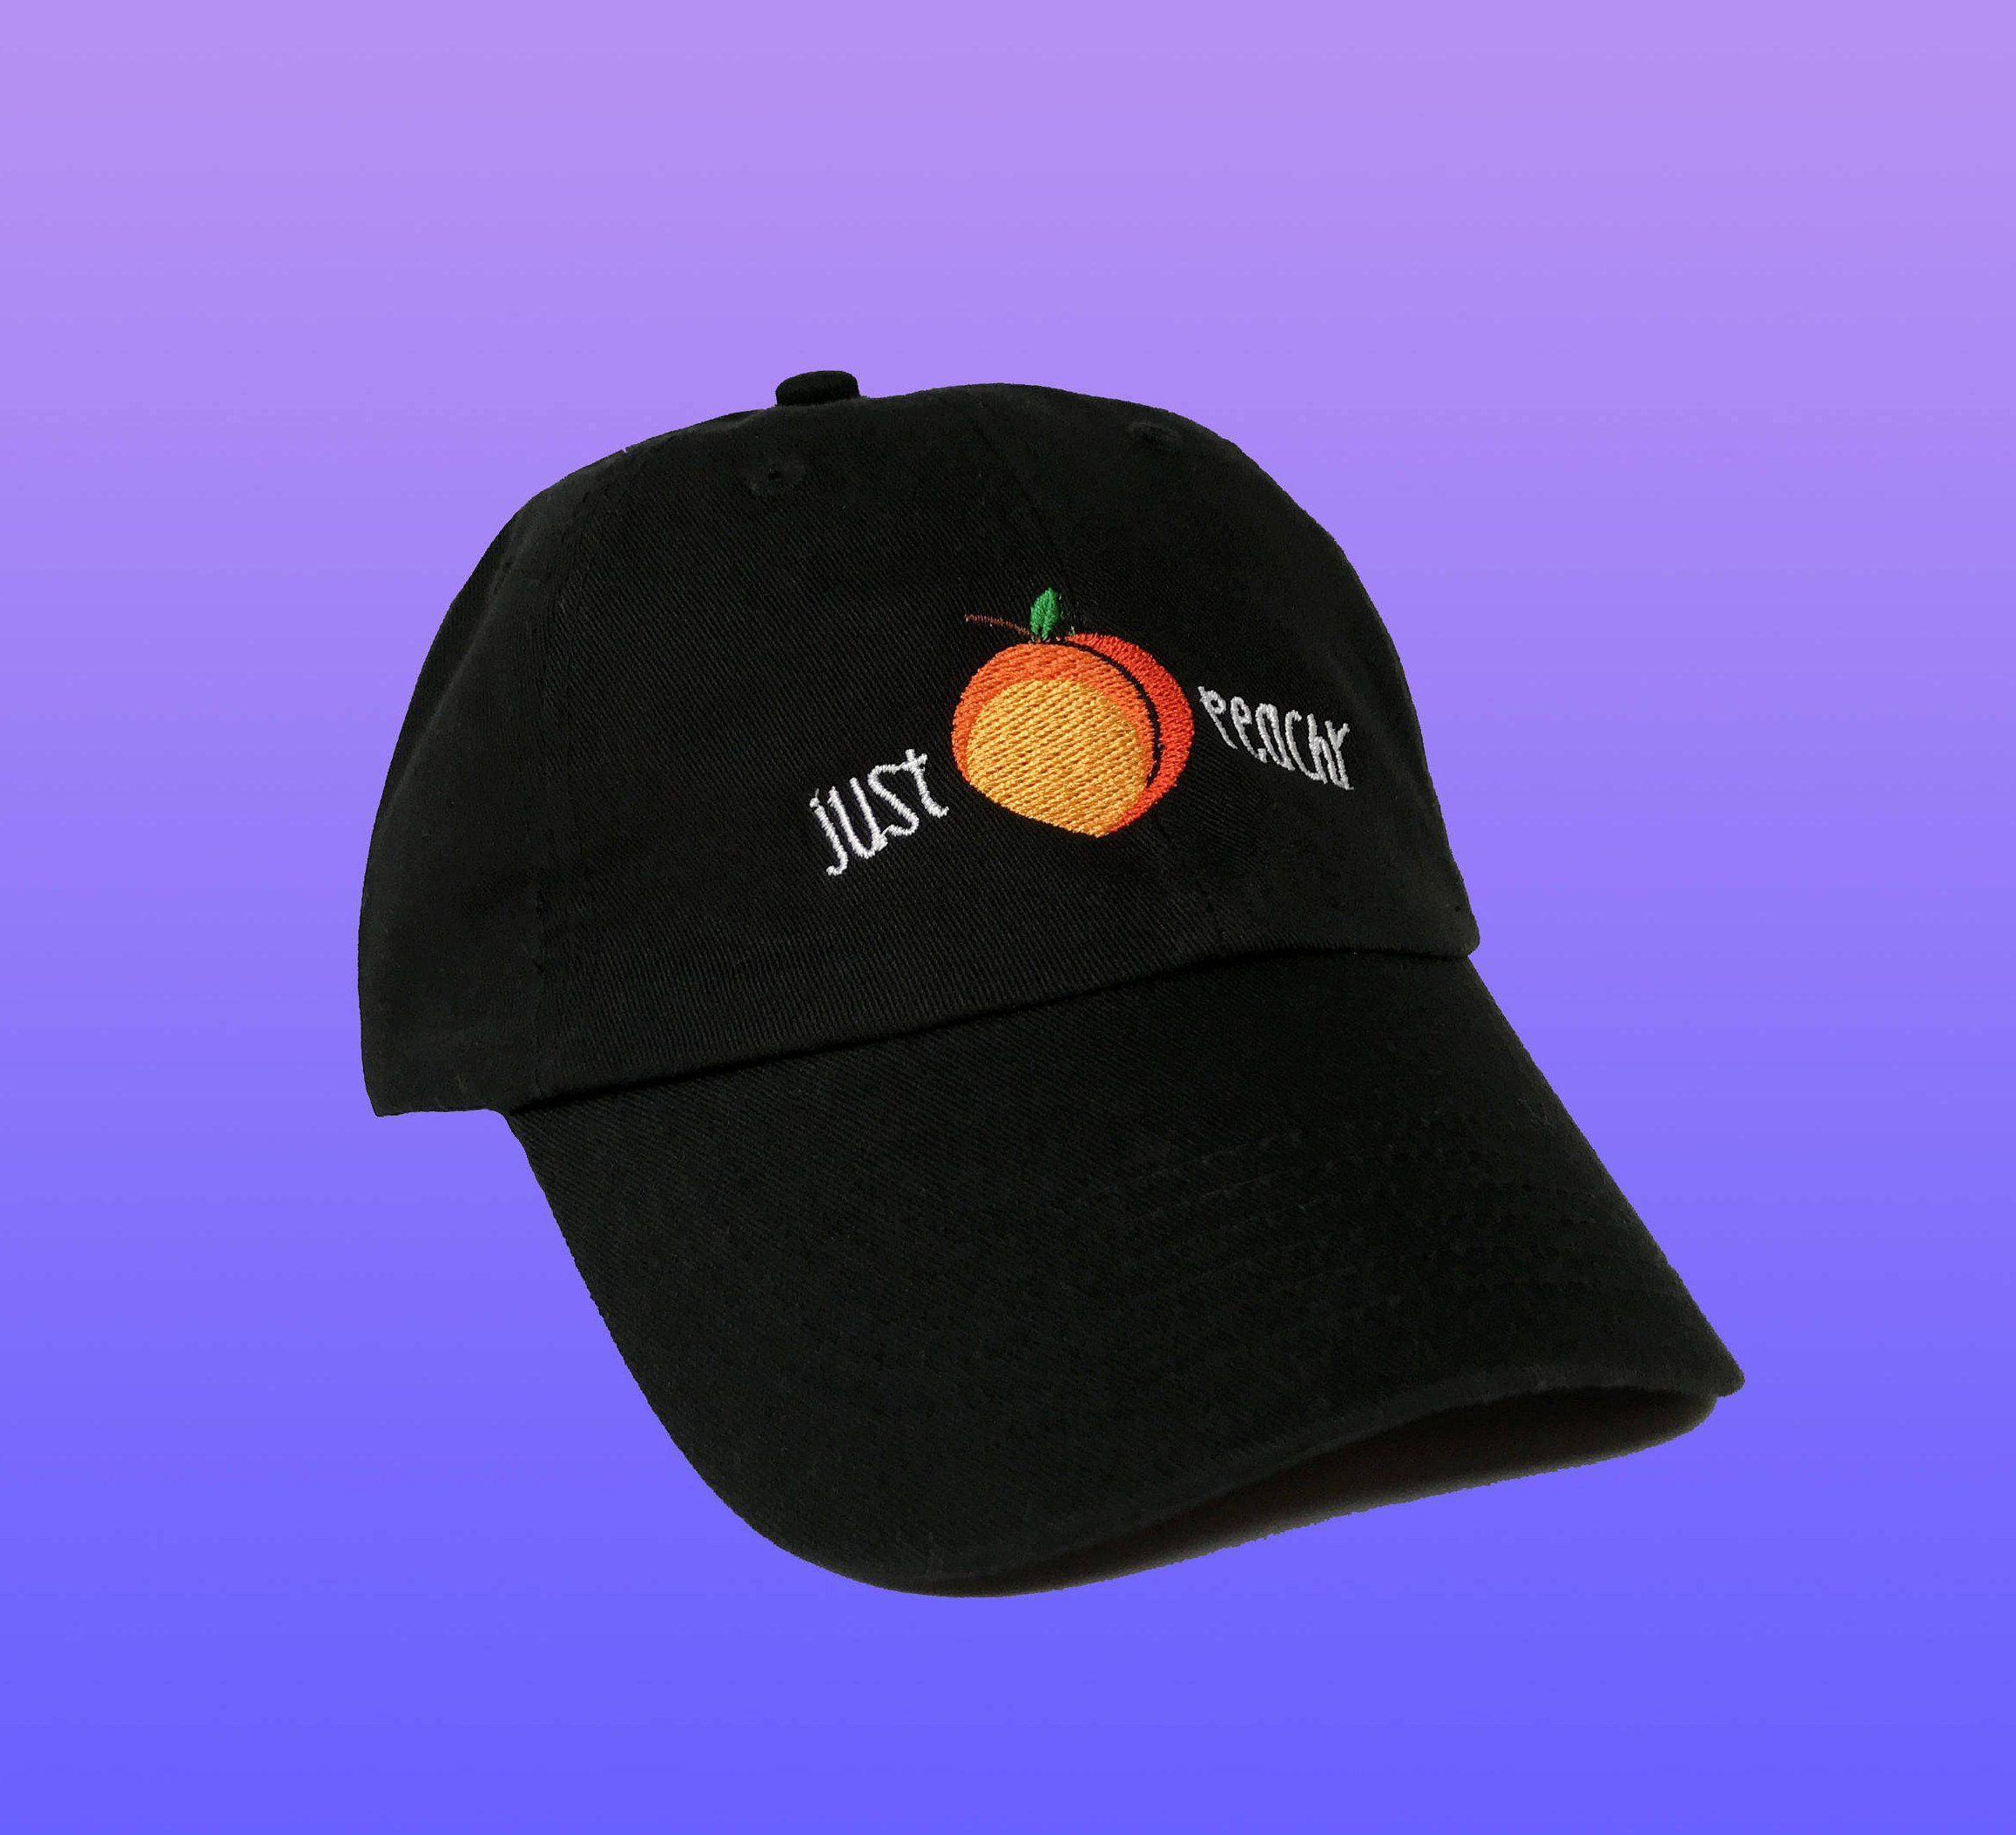 1710283b351a0 This cute embroidered dad hat will keep you smiling and remind you that  everything will be just peachy! Each hat is unisex and adjustable.